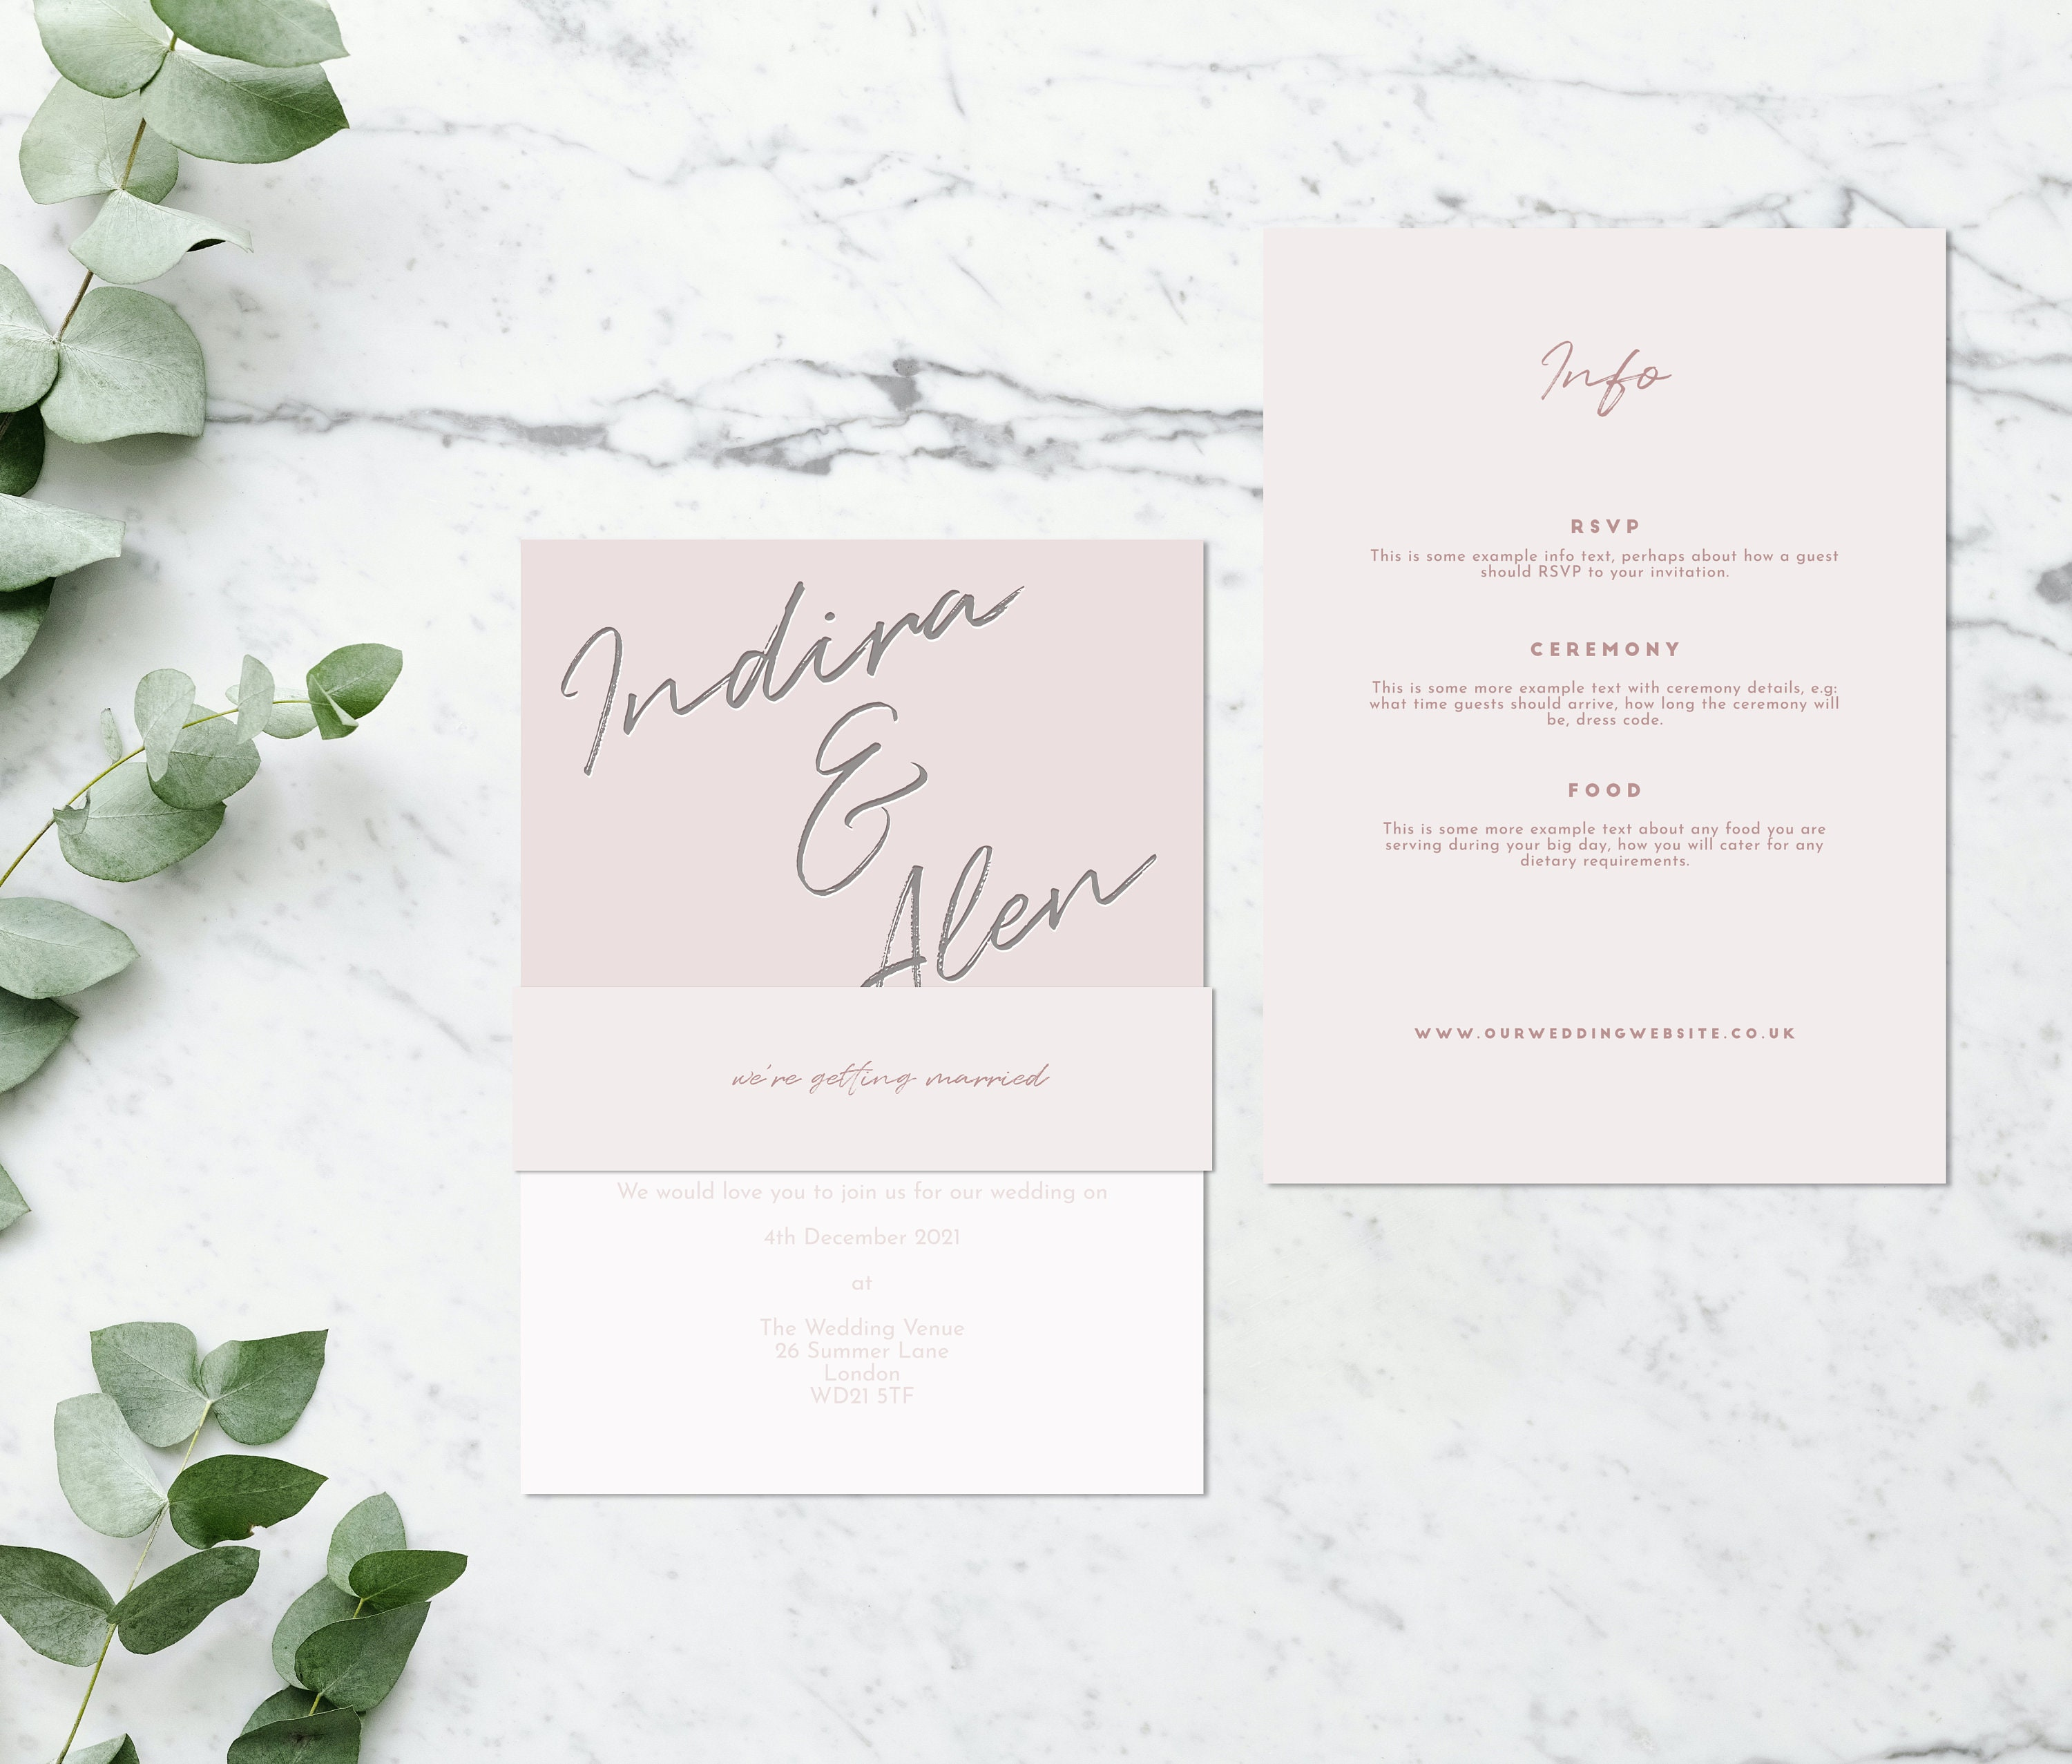 Flat lay photograph of a wedding invitation and information card. The wedding invitation is overlaid with a vellum sheet and wrapped in a belly band. Each card is two-tone blush pink